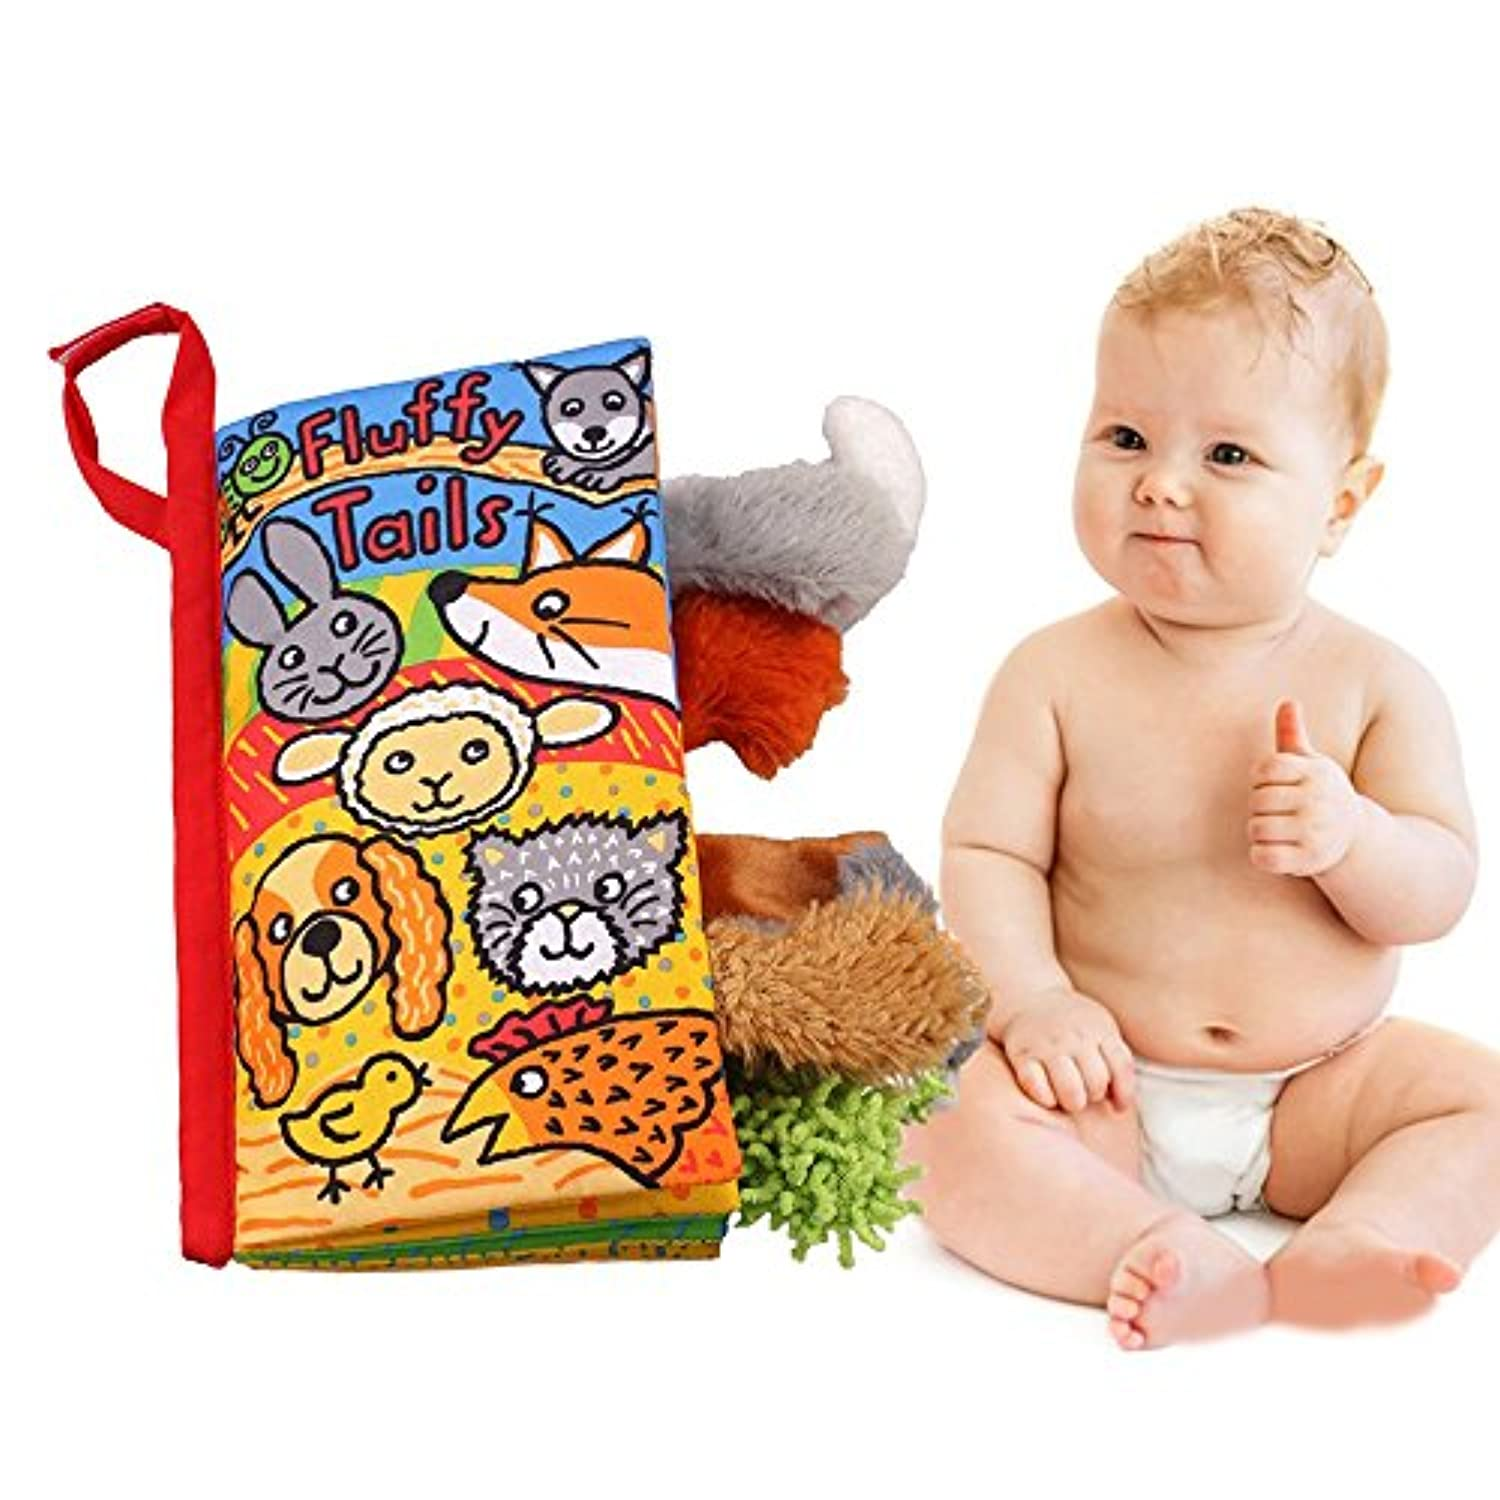 (Puppy Tails) - LUCKSTAR Baby 3D Cloth Book - Baby Reading Cloth Book Tails Animals Shape & Colour Recognition Toys Animals Book Baby Toy Cloth Development Books Educational Toy (Puppy Tails)